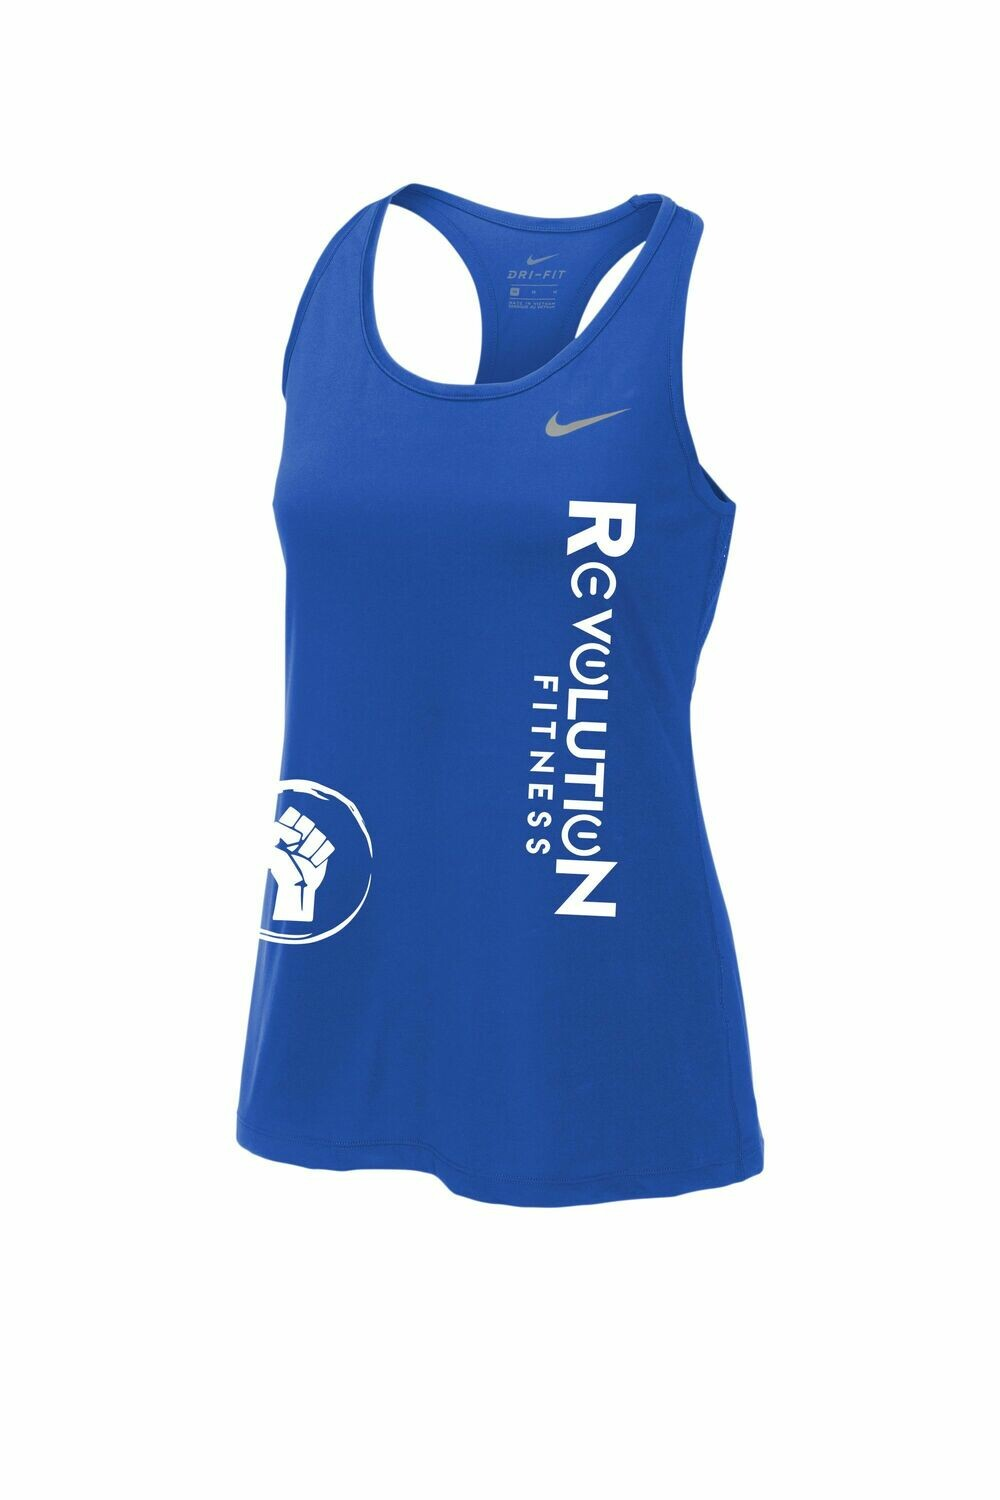 Revolution Fitness Nike Ladies Dry Balance Tank